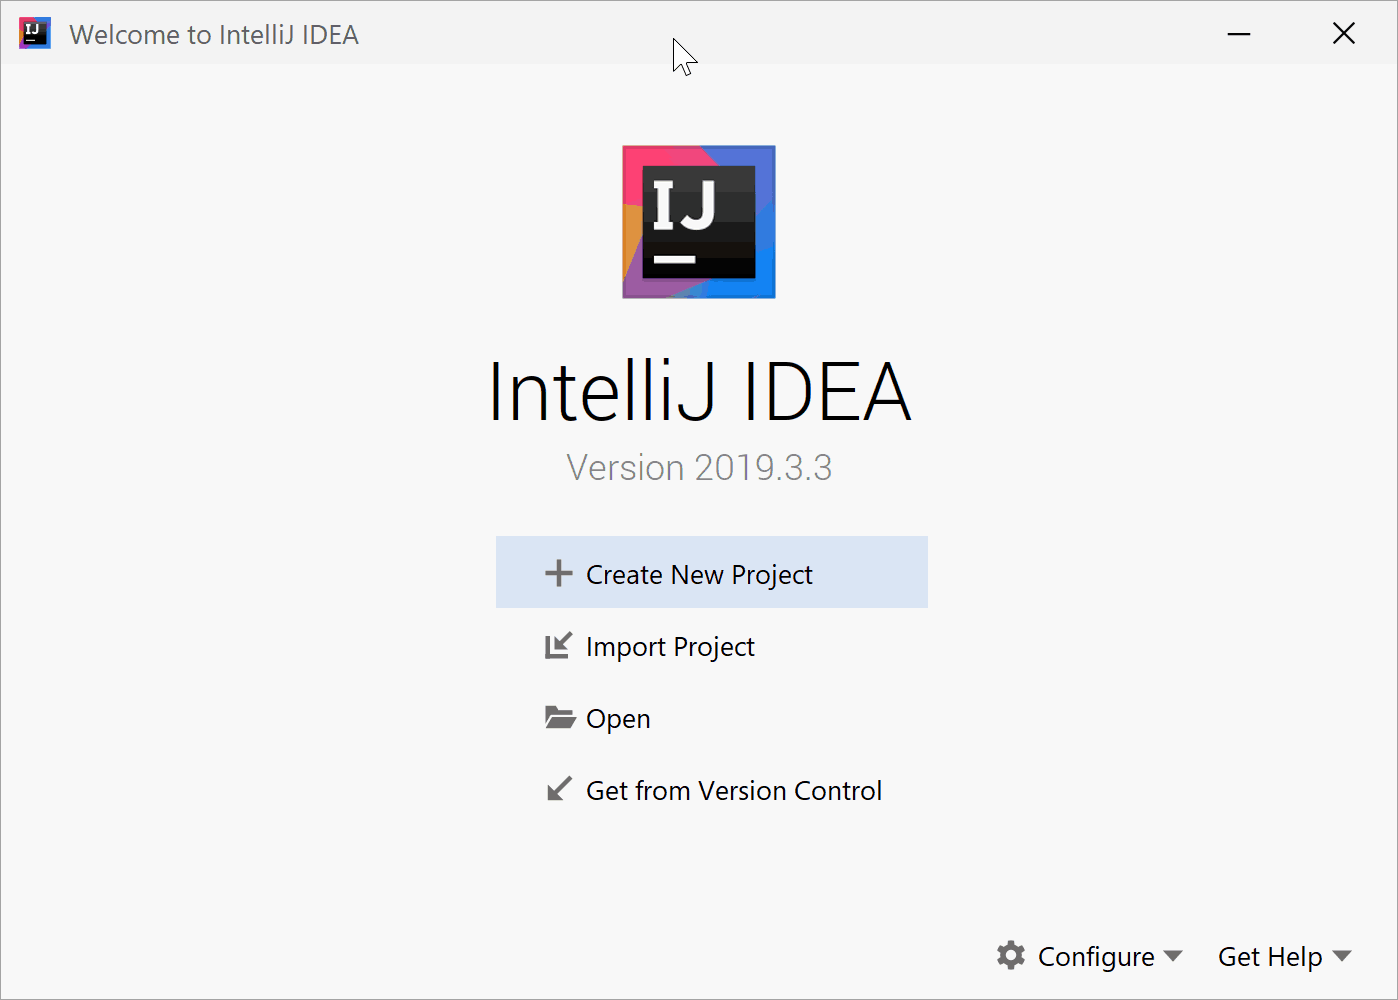 intellij_idea_welcome